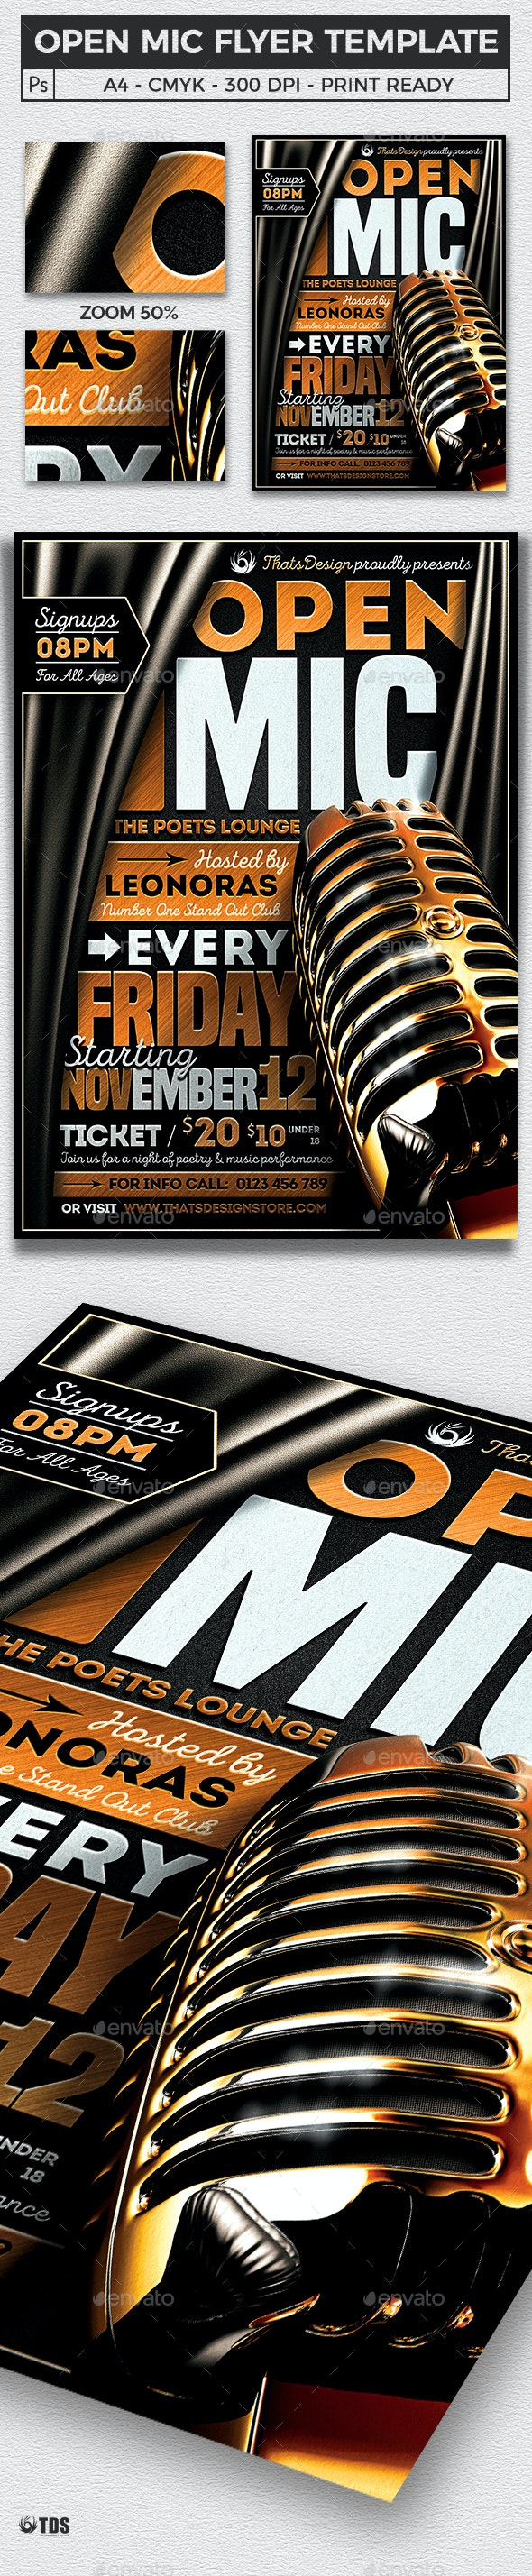 Open Mic Flyer Template - Concerts Events